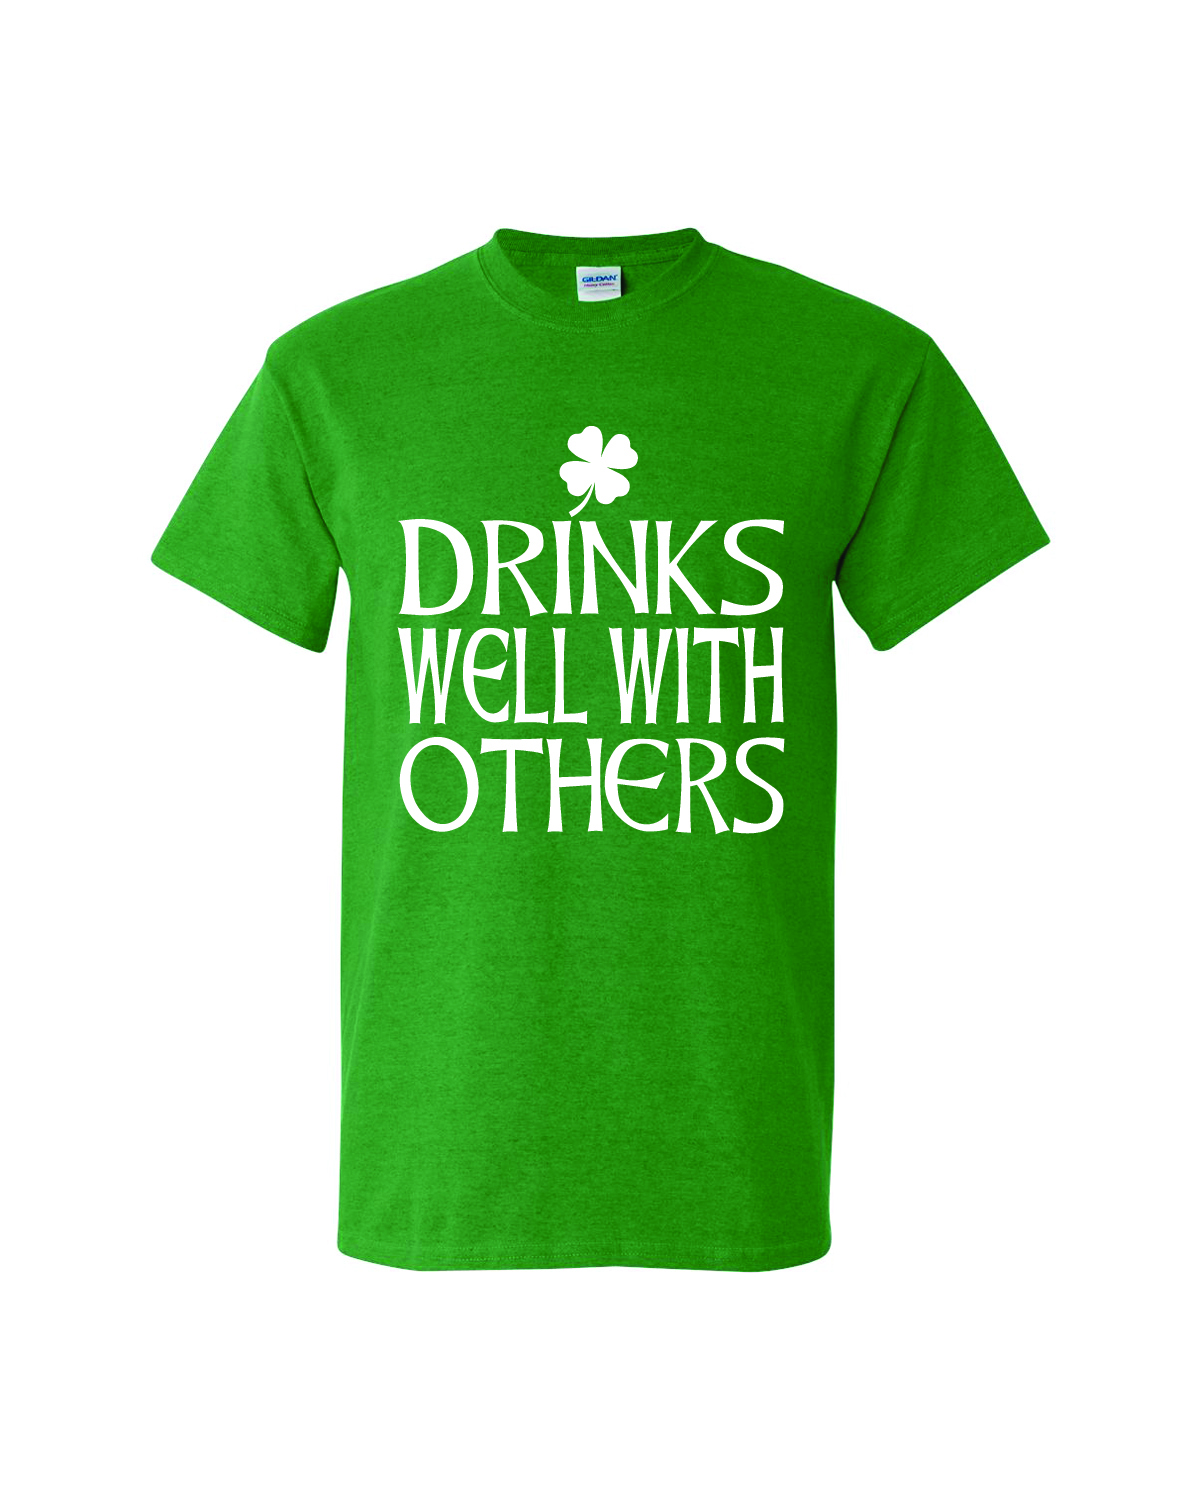 St. Patty's Day Short Sleeve Tee - Drinks Well